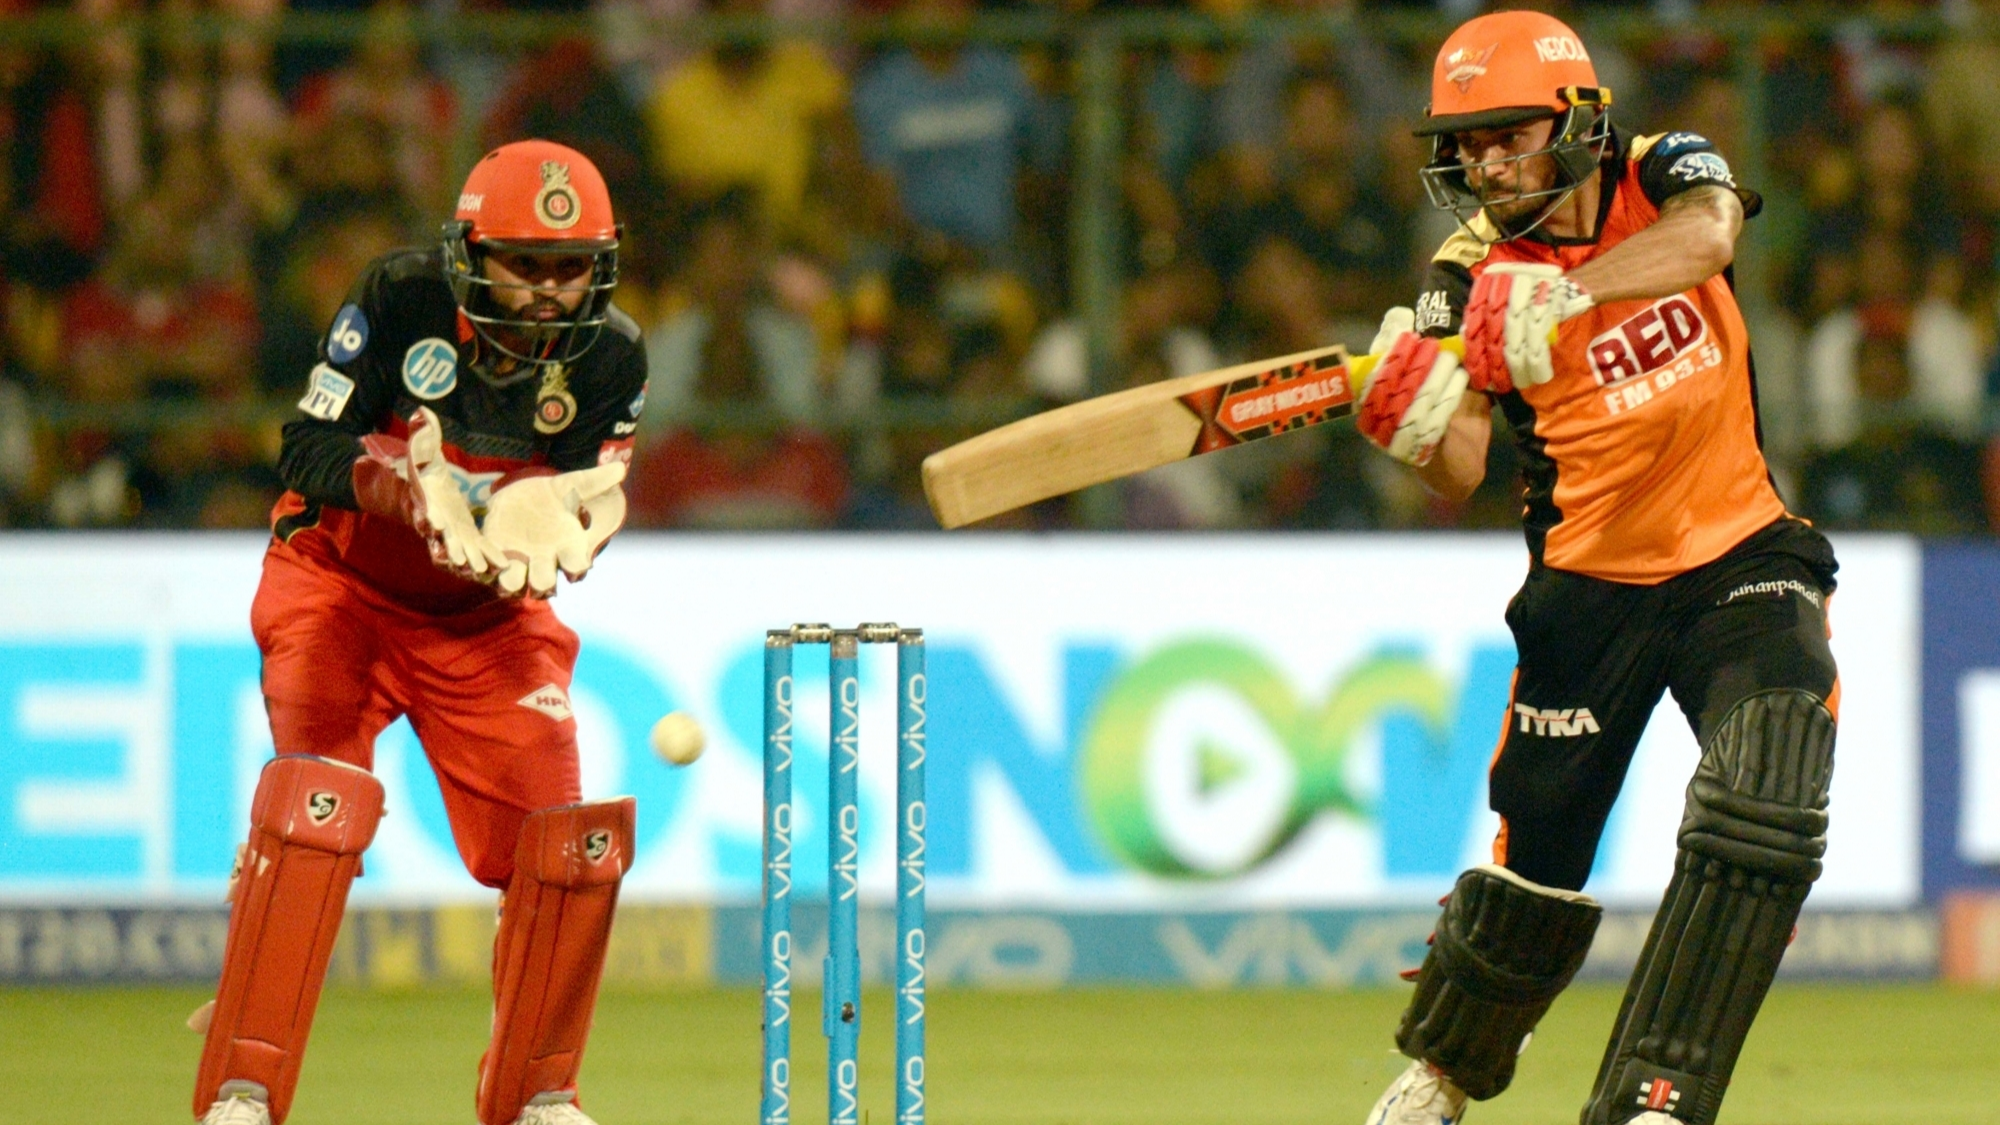 IPL 2018: Manish Pandey rues SRH bowlers' poor effort after a 14-run defeat to RCB